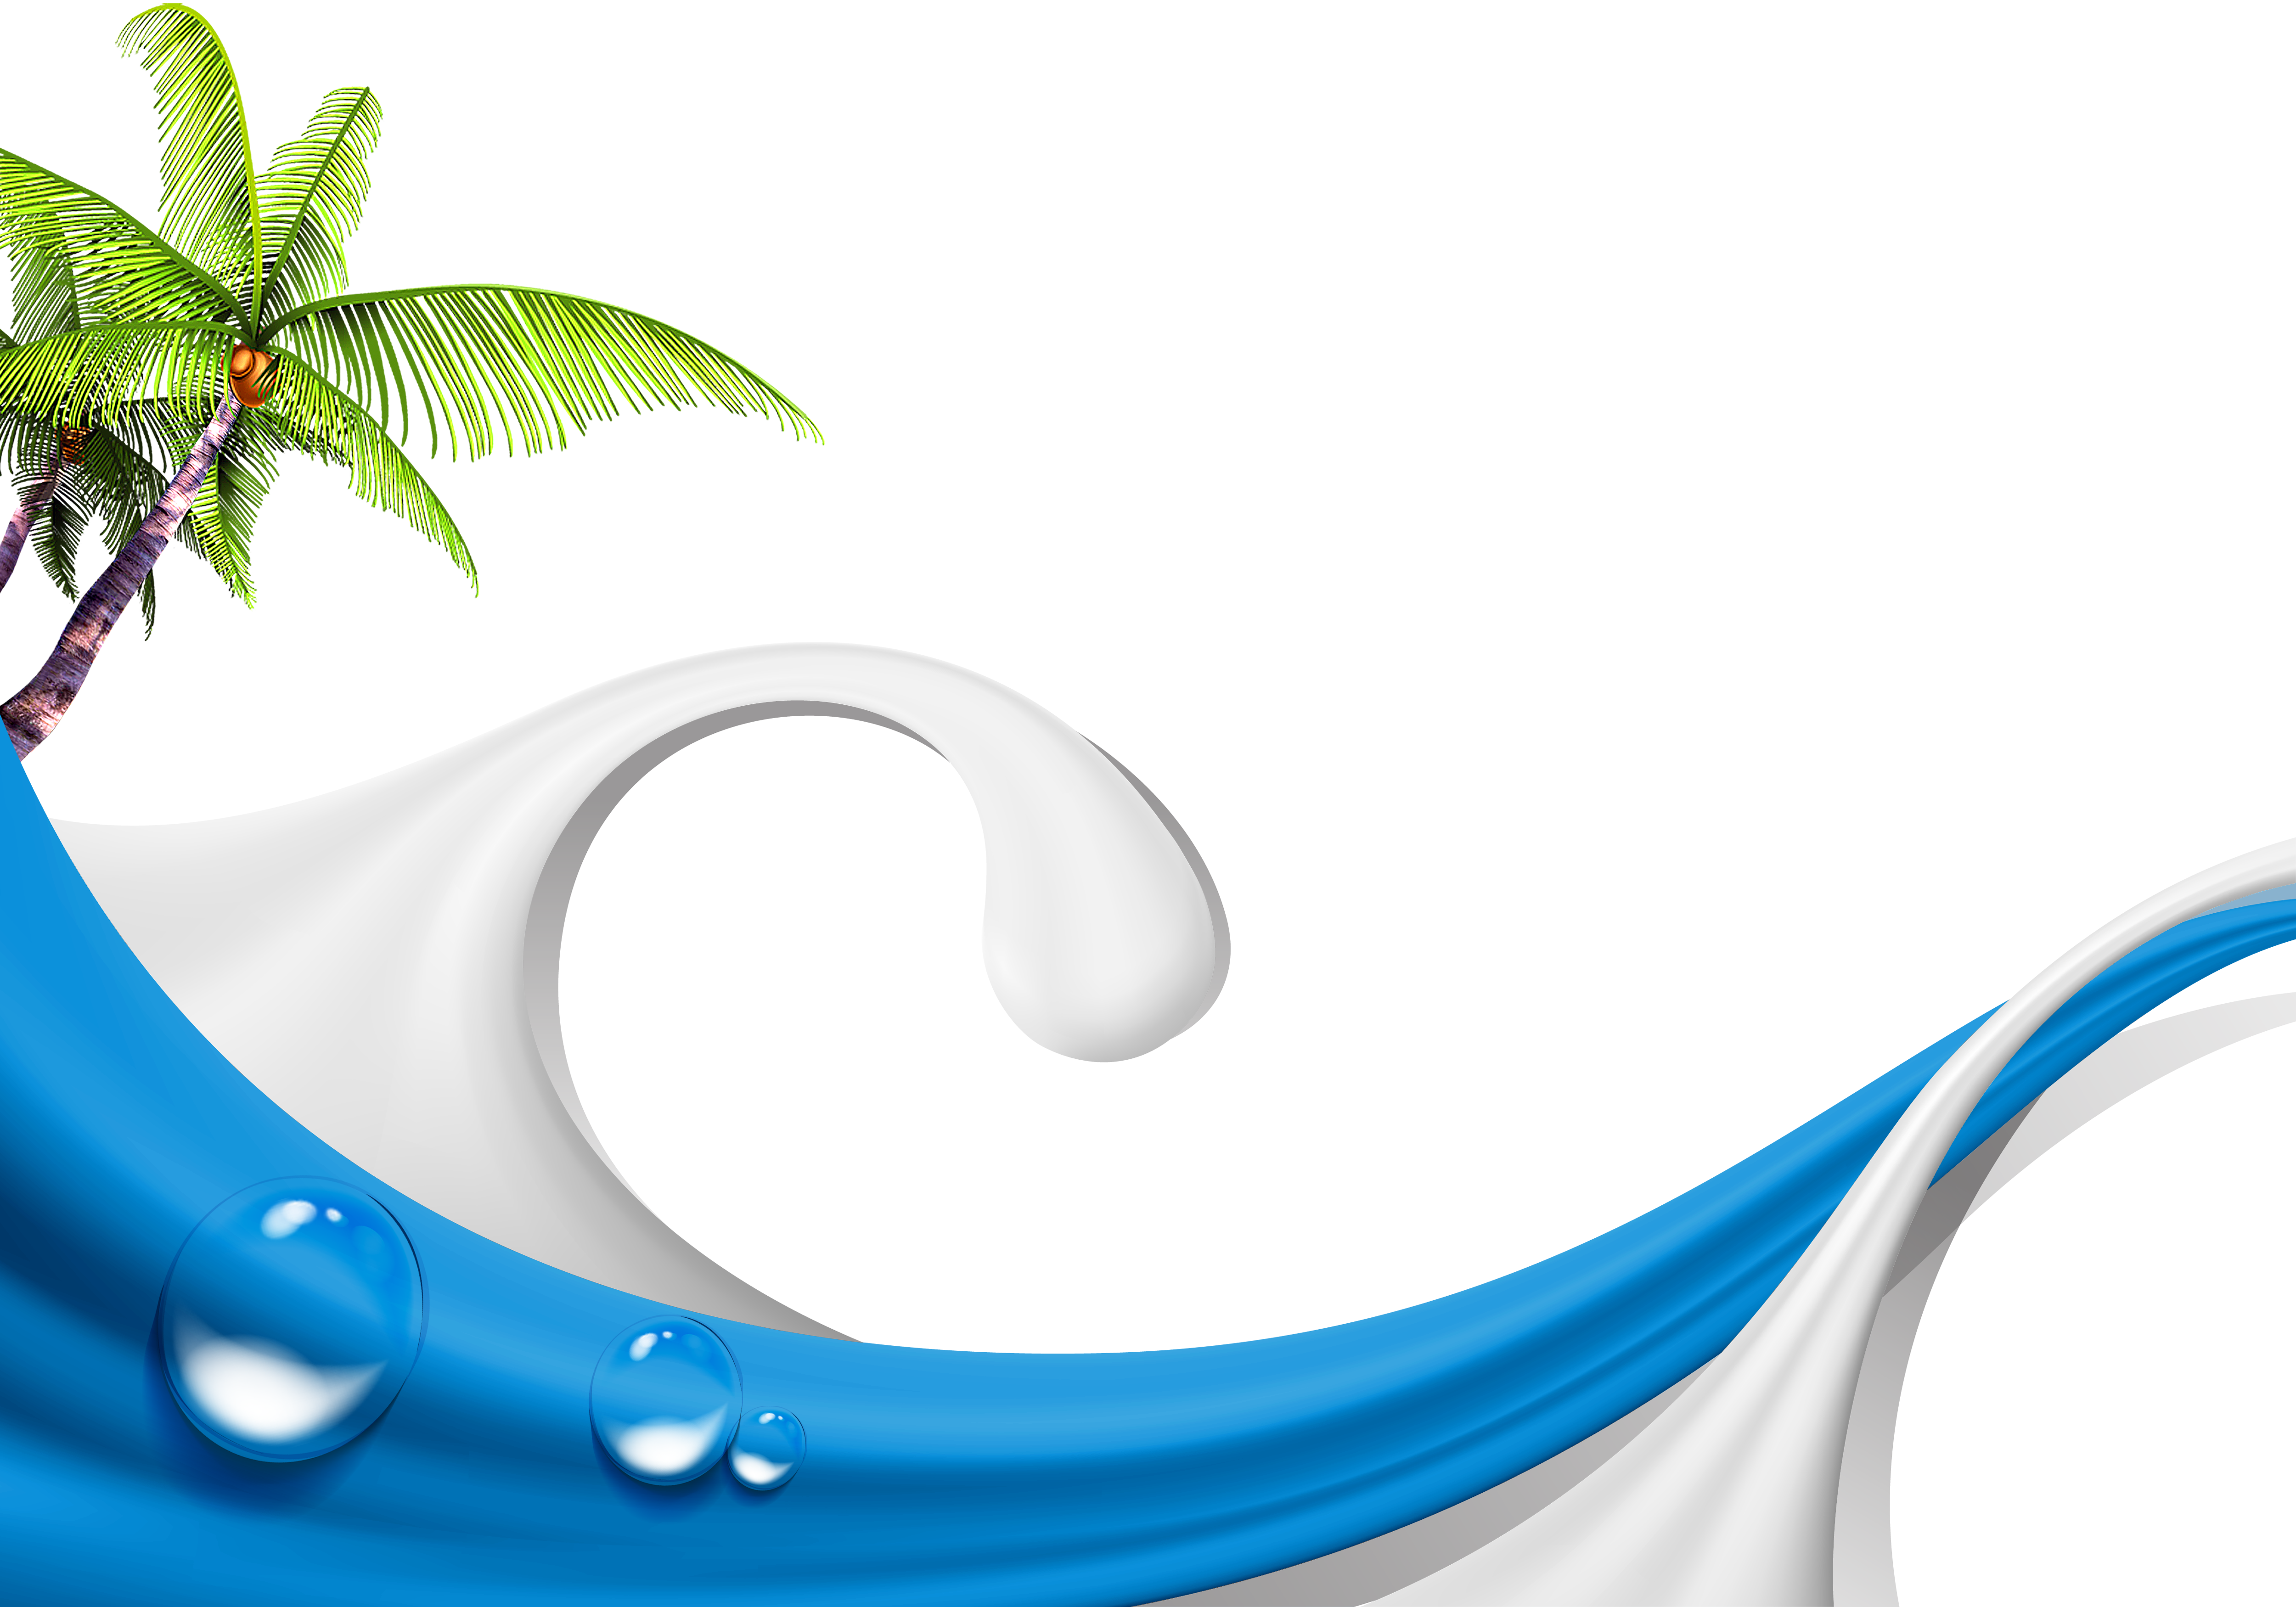 Water waves png. Graphic design transprent free